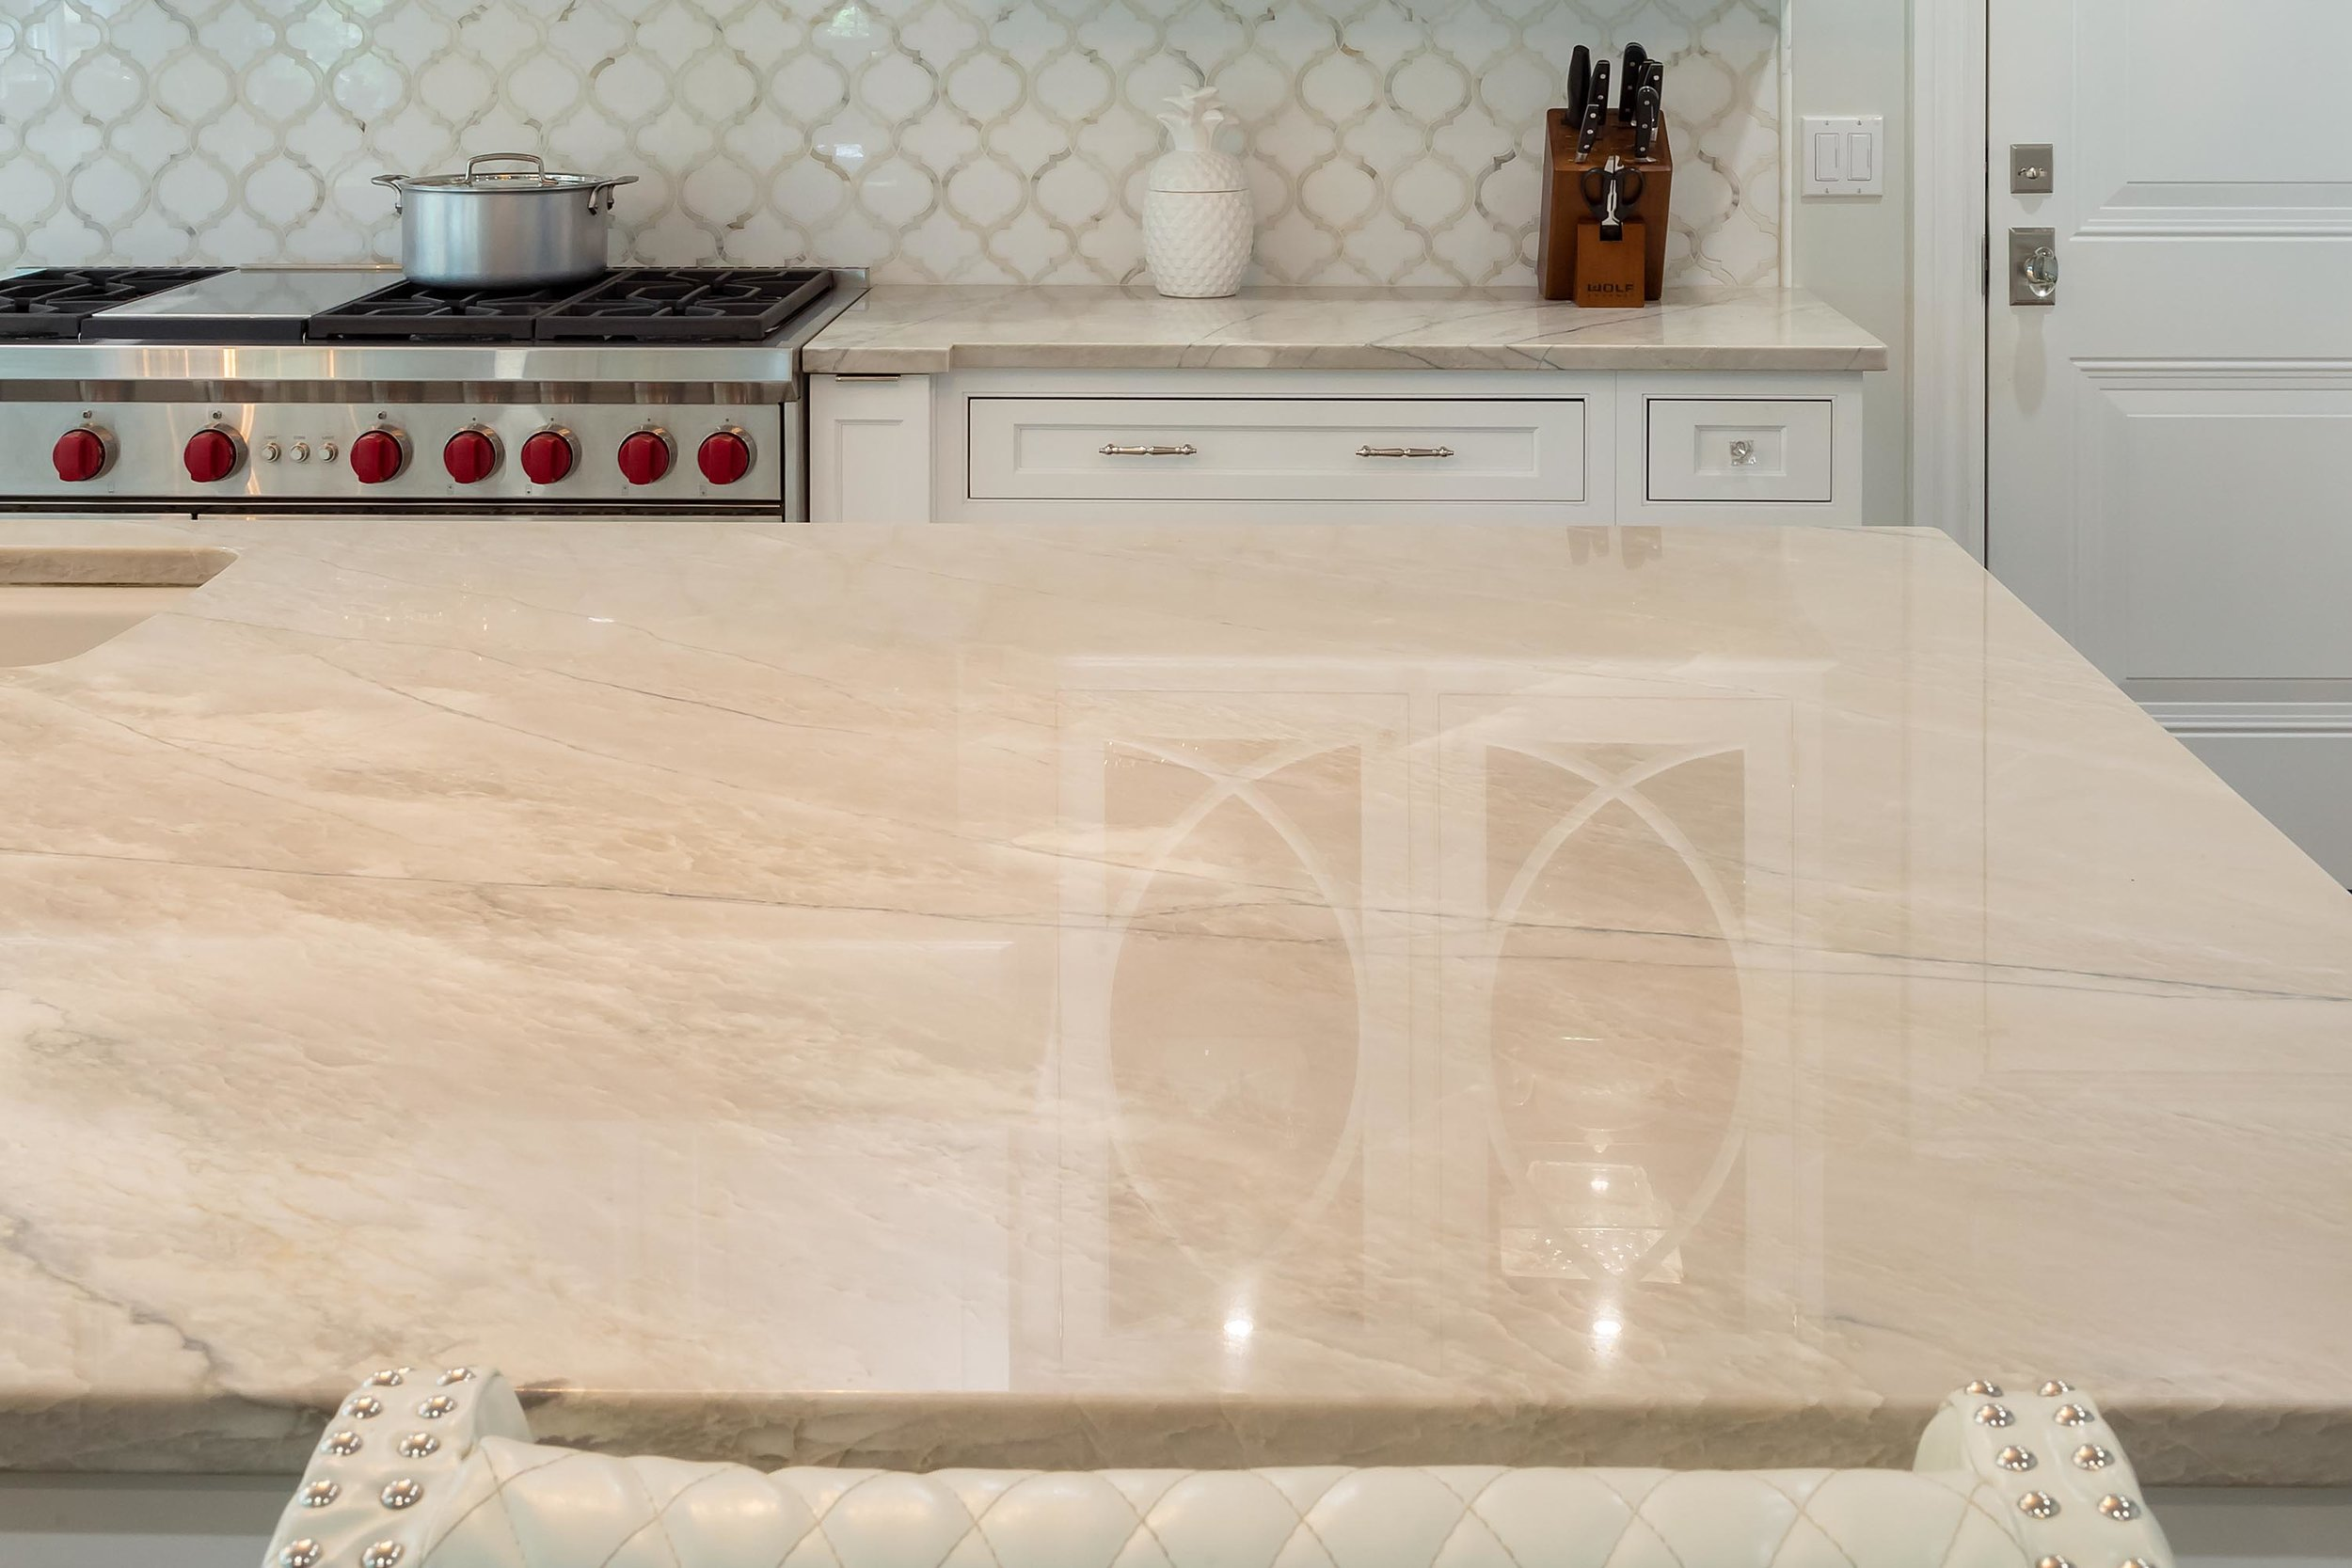 COUNTERTOPS - We offer samples of quartz, quartzite, marble and cement for countertops & backsplashes. We may suggest details in single & double edge profiles and can educate you on the differences.